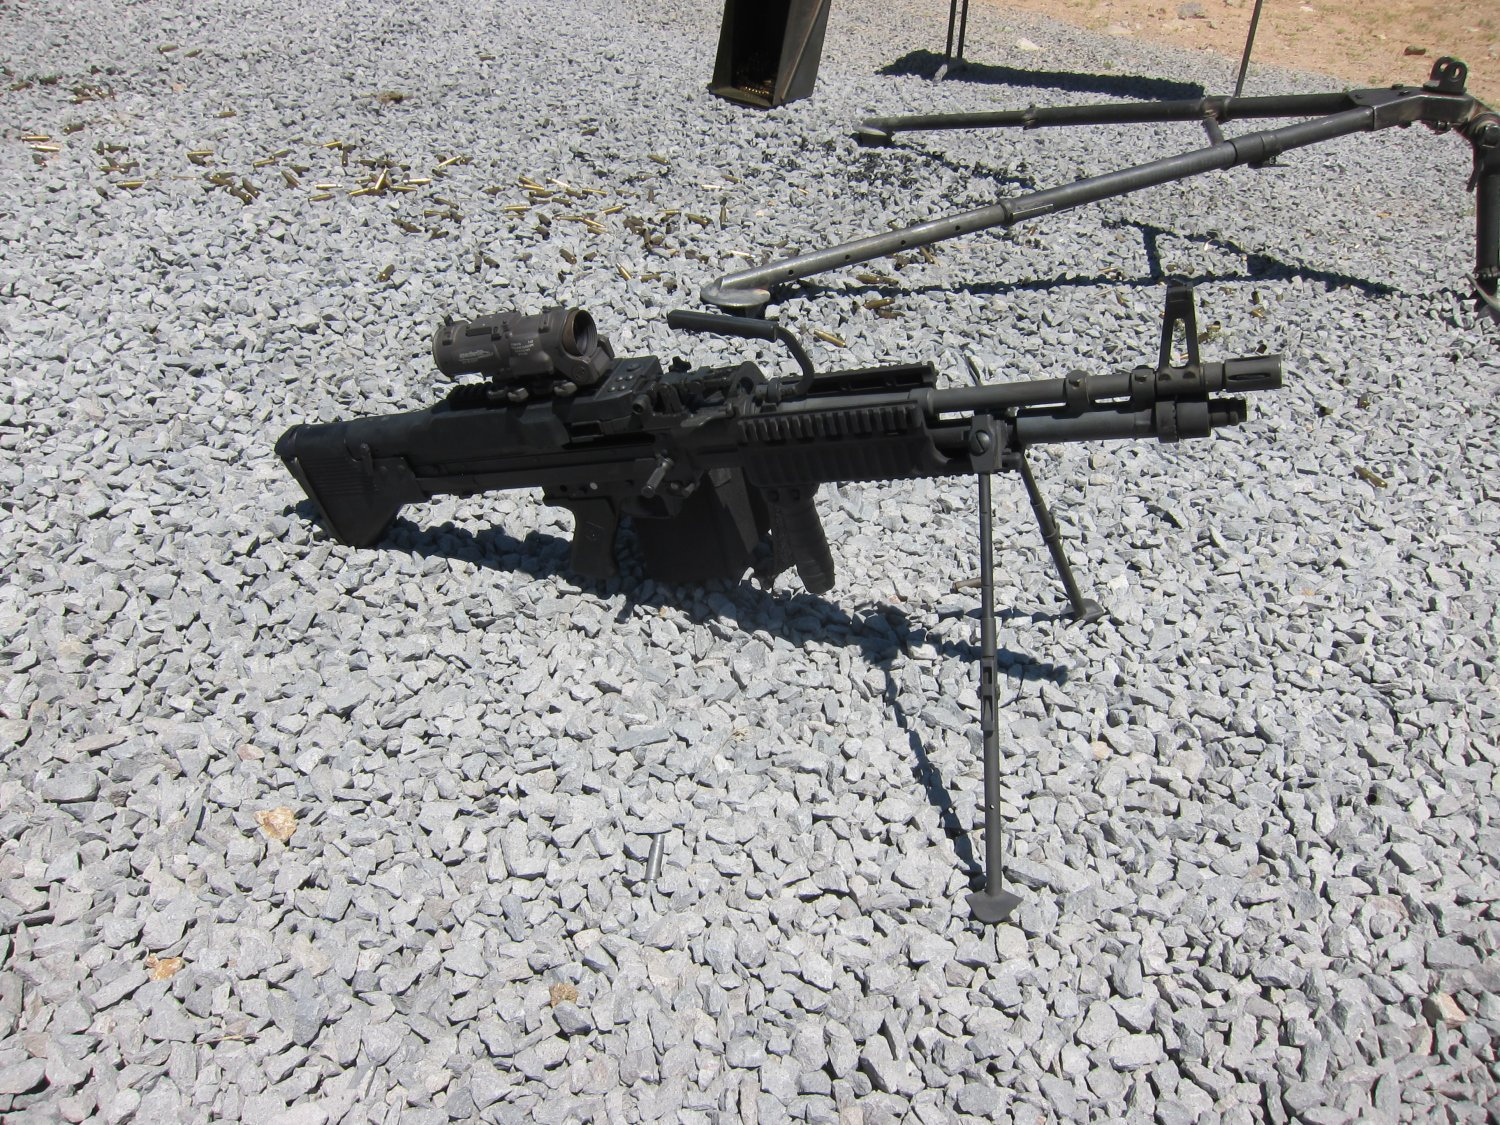 U.S. Ordnance Mk43 Mod 1 M60E4 Medium Machine Gun 7.62mm MMG 1 <!  :en  >U.S. Ordnance Mk43 Mod 1/M60E4 Commando 7.62mm NATO Medium Machine Gun (MMG) for Special Operations Forces (U.S. Navy SEALs): Latest Version Weapon Gets Test Fired at the Range (Video!) <!  :  >